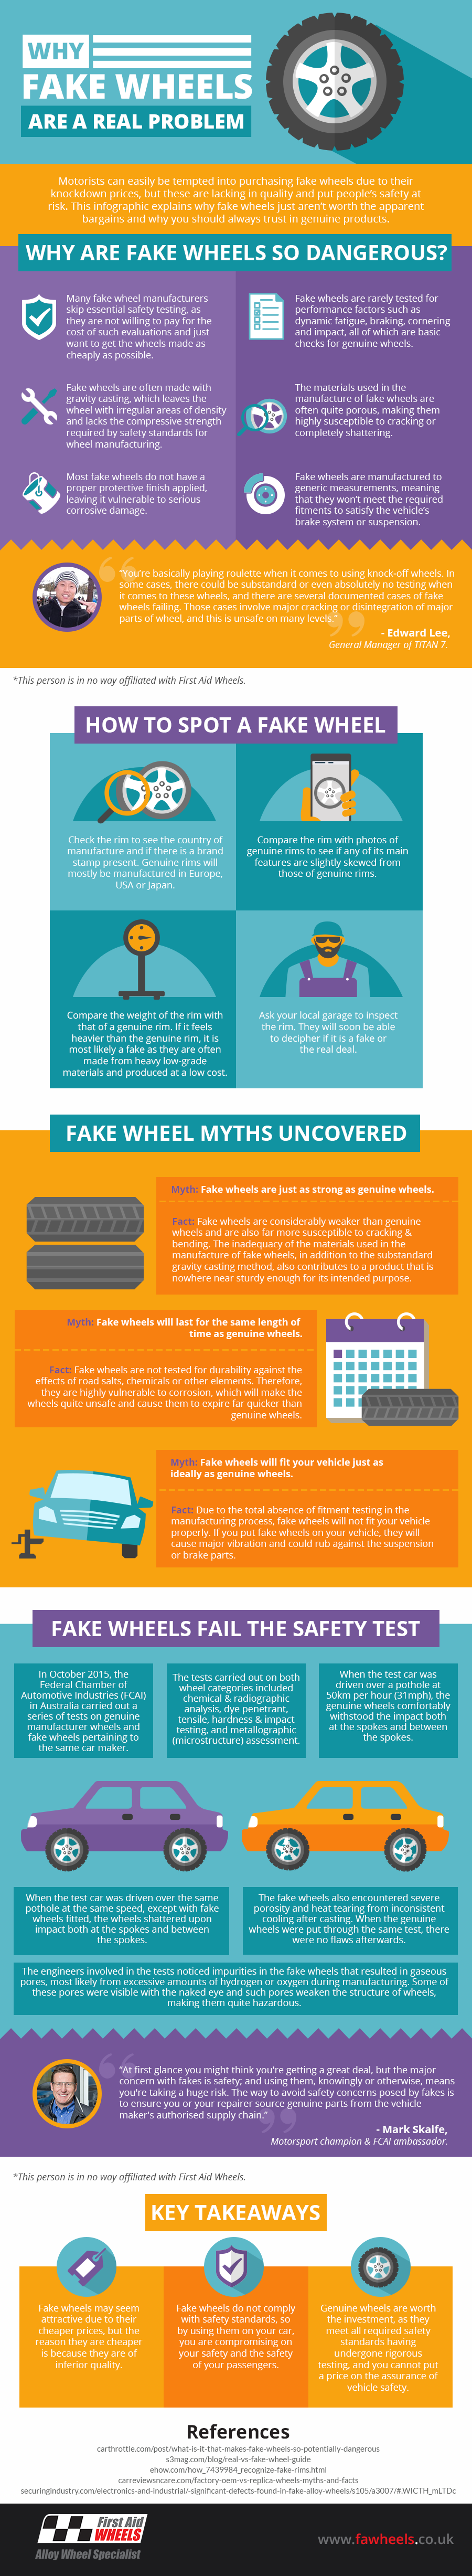 Why-Fake-Wheels-are-a-Real-Problem-Infographic